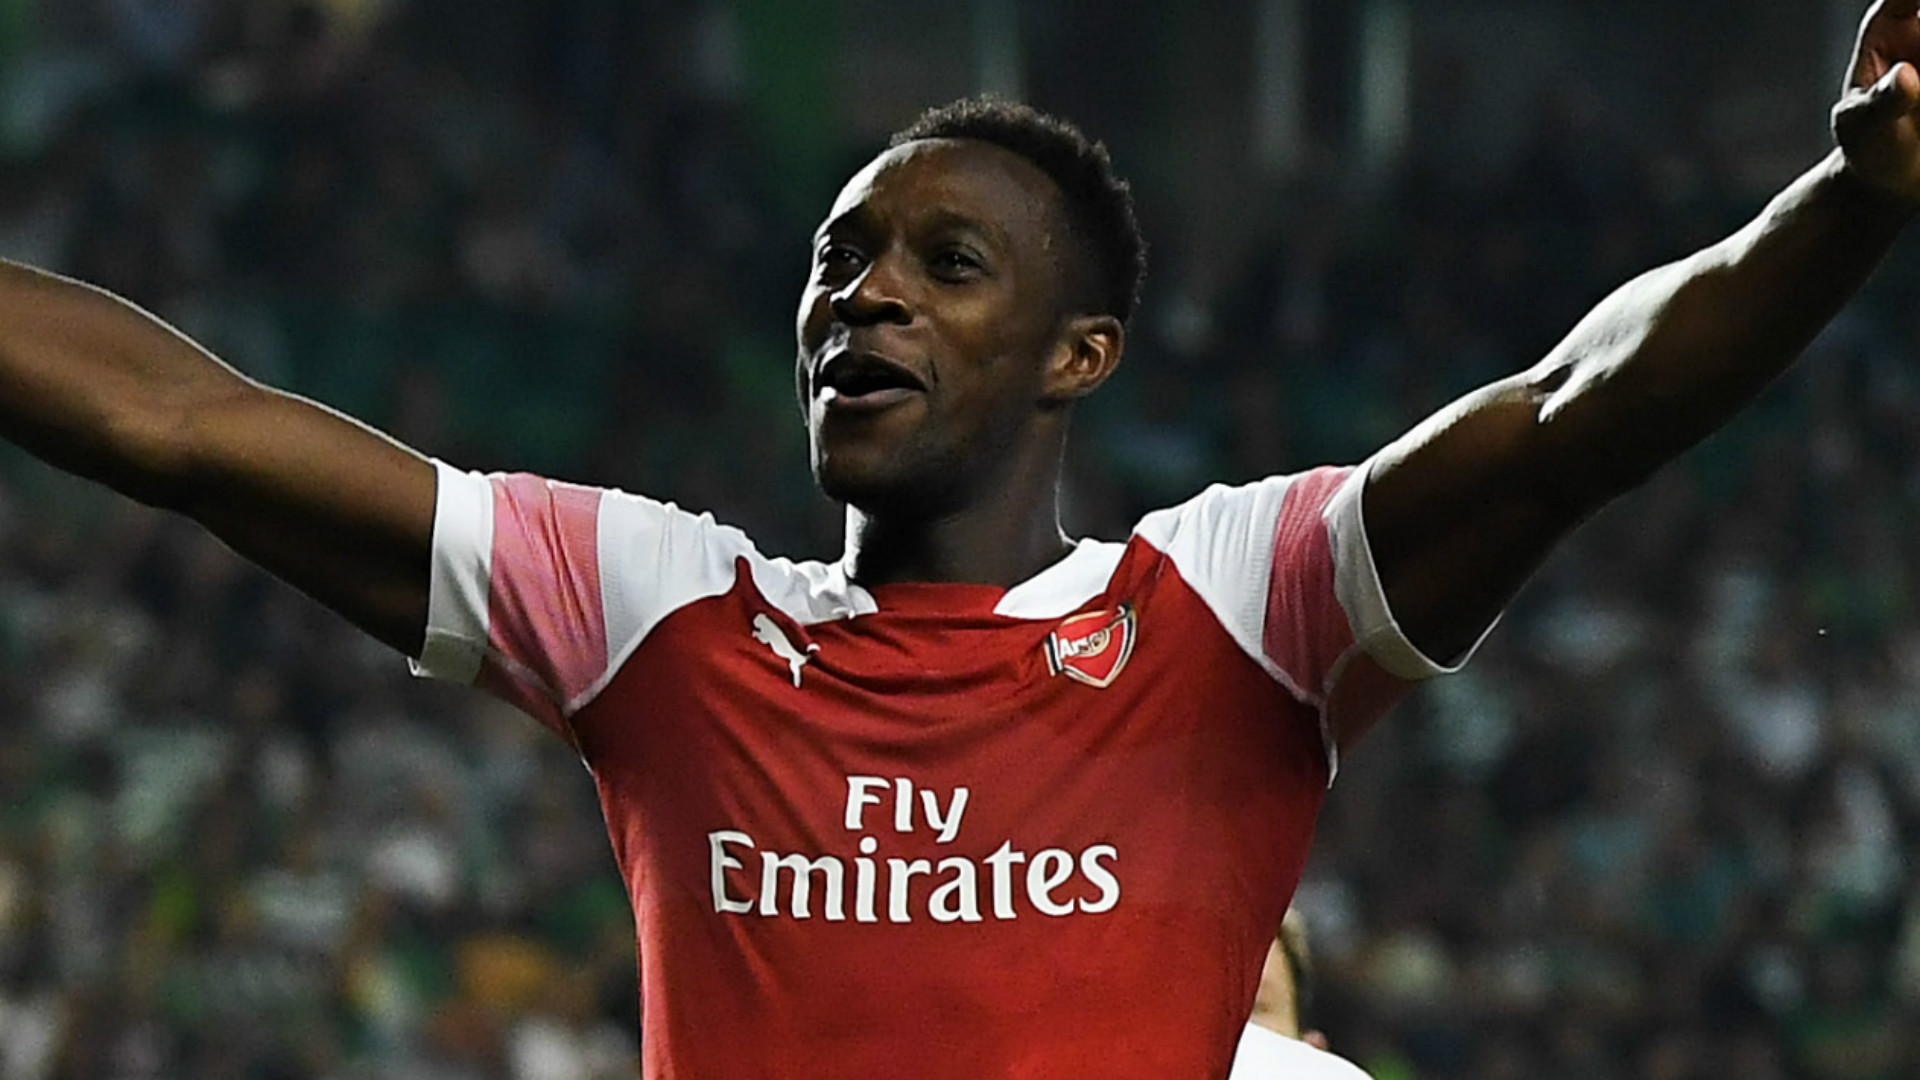 Watford complete swoop for ex-Arsenal star Welbeck